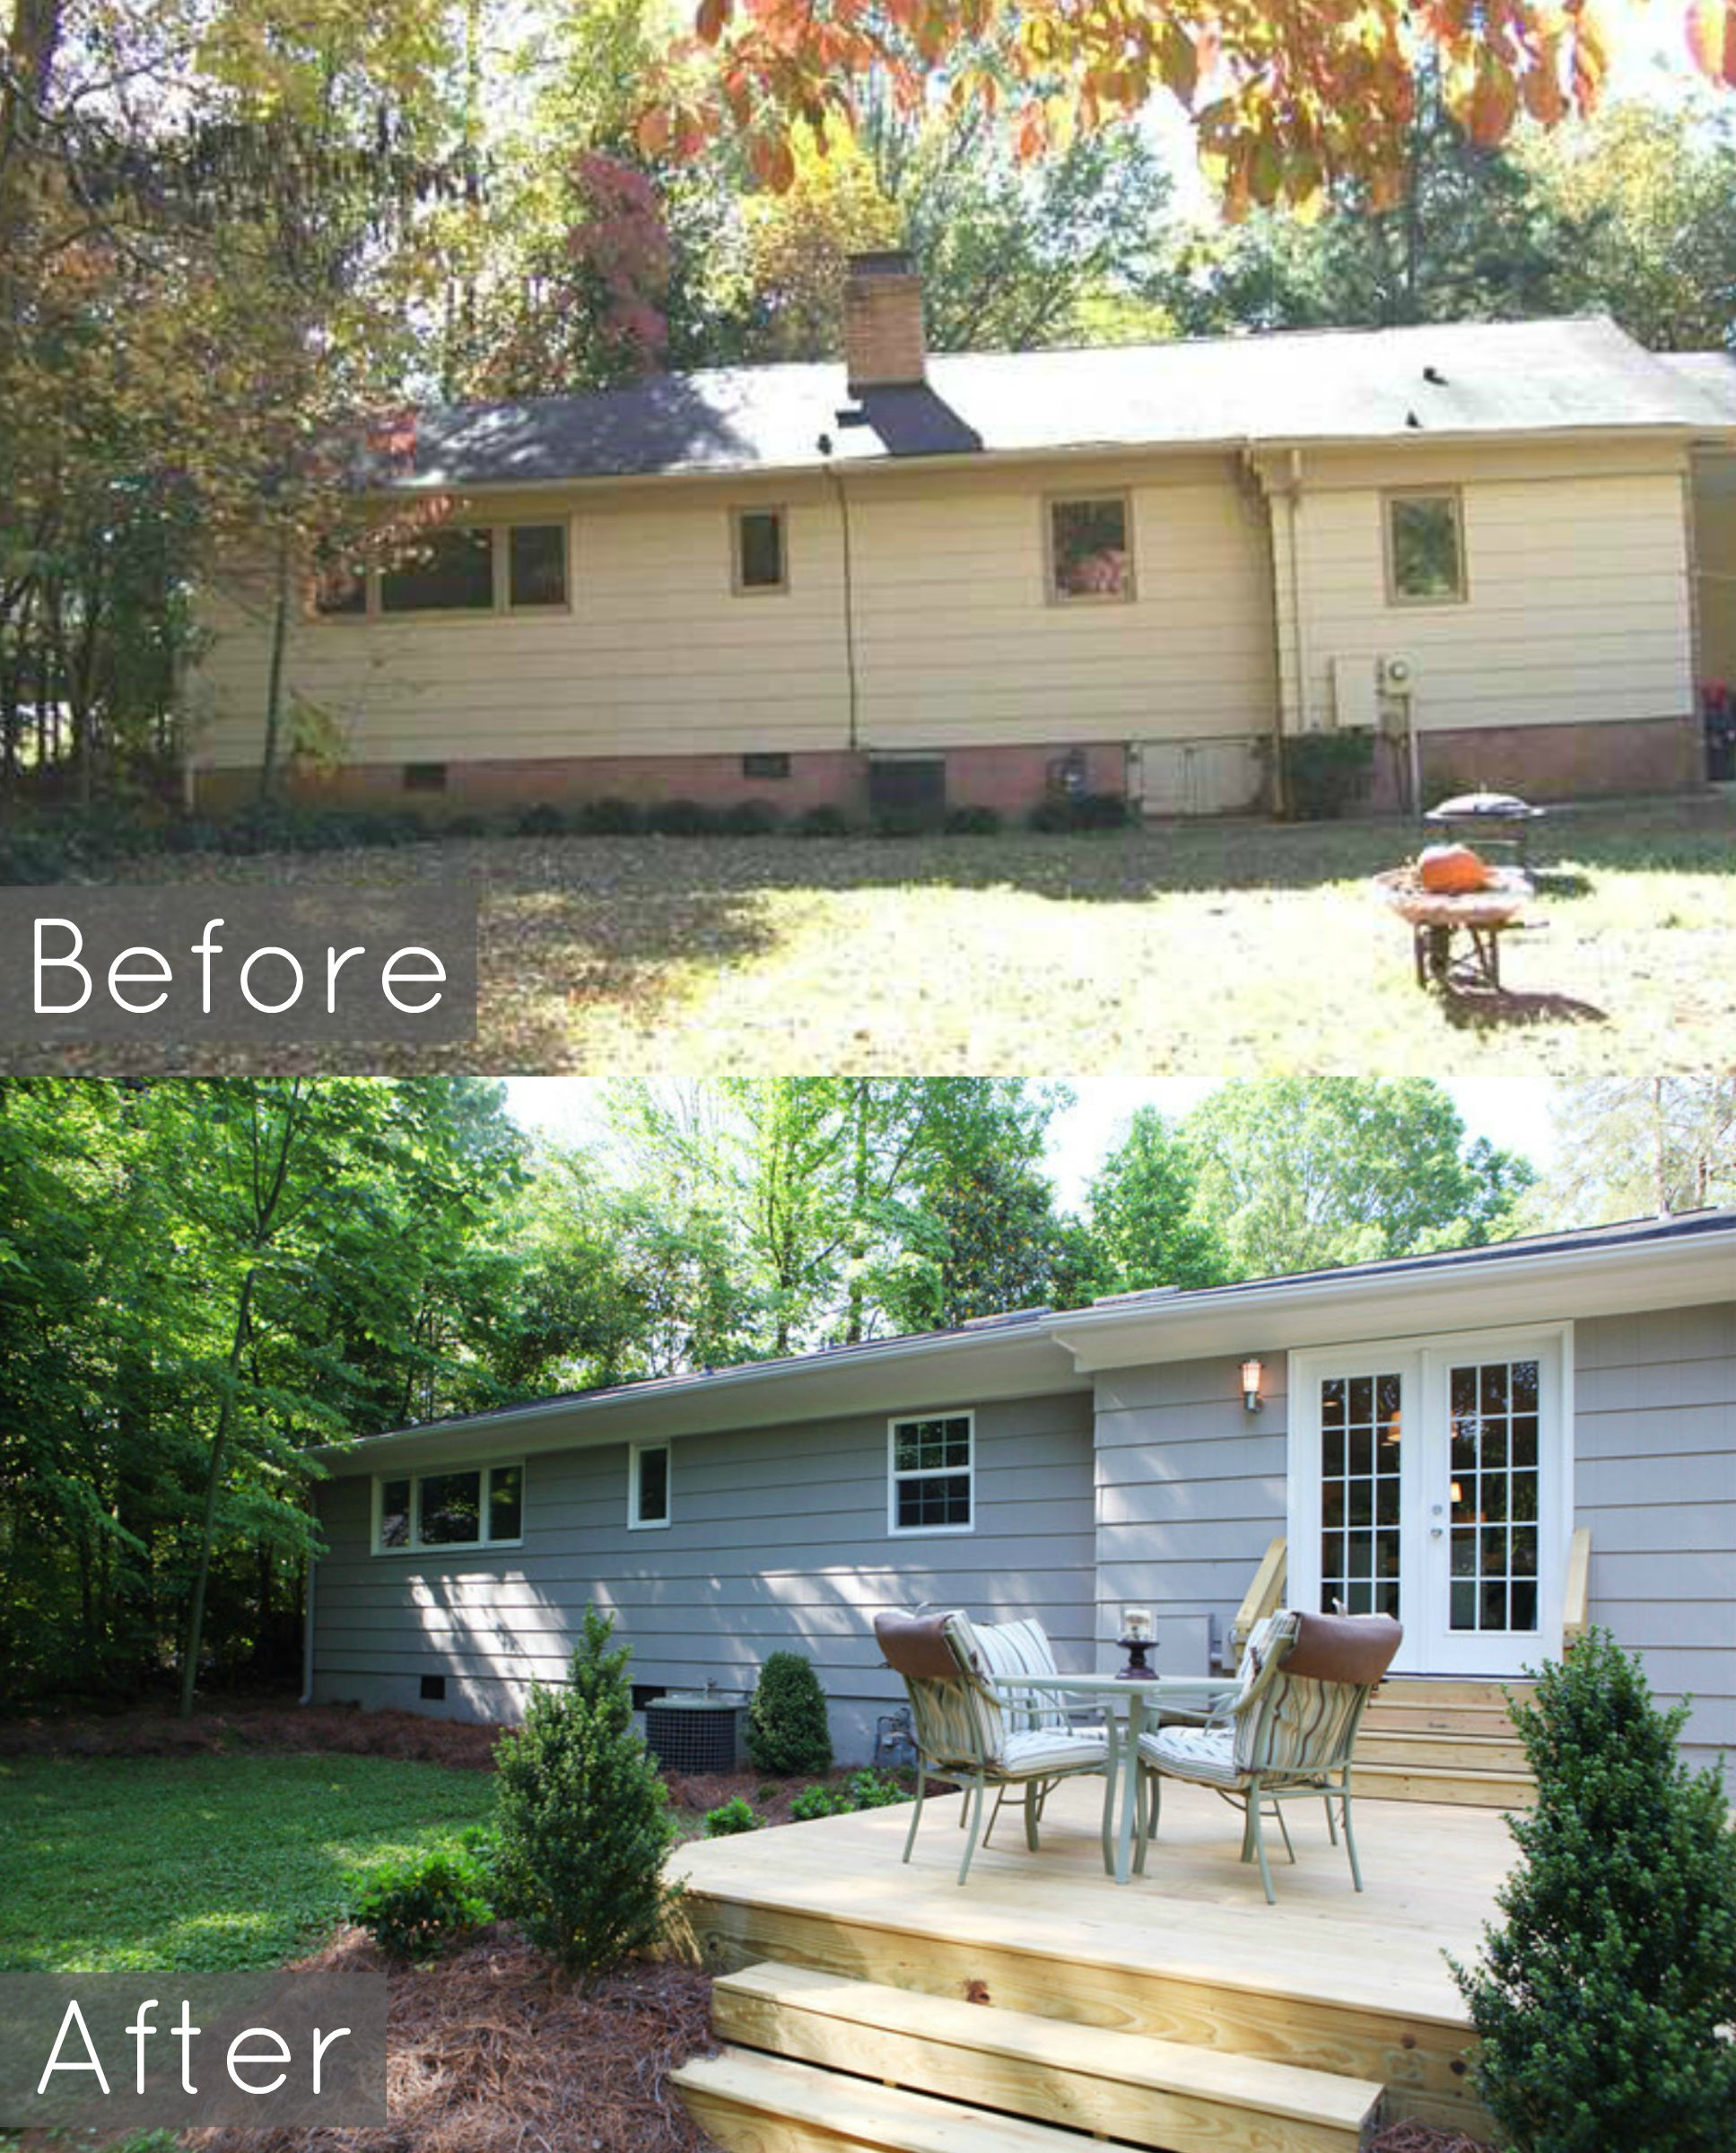 Front Yard Renovation Ideas Part - 26: Garden And Patio Front Yard Landscaping Ideas For Small Ranch Backyard  Split Level Mobile Park Landscape . Landscaping Ideas For Front Yard Of A  Ranch Style ...